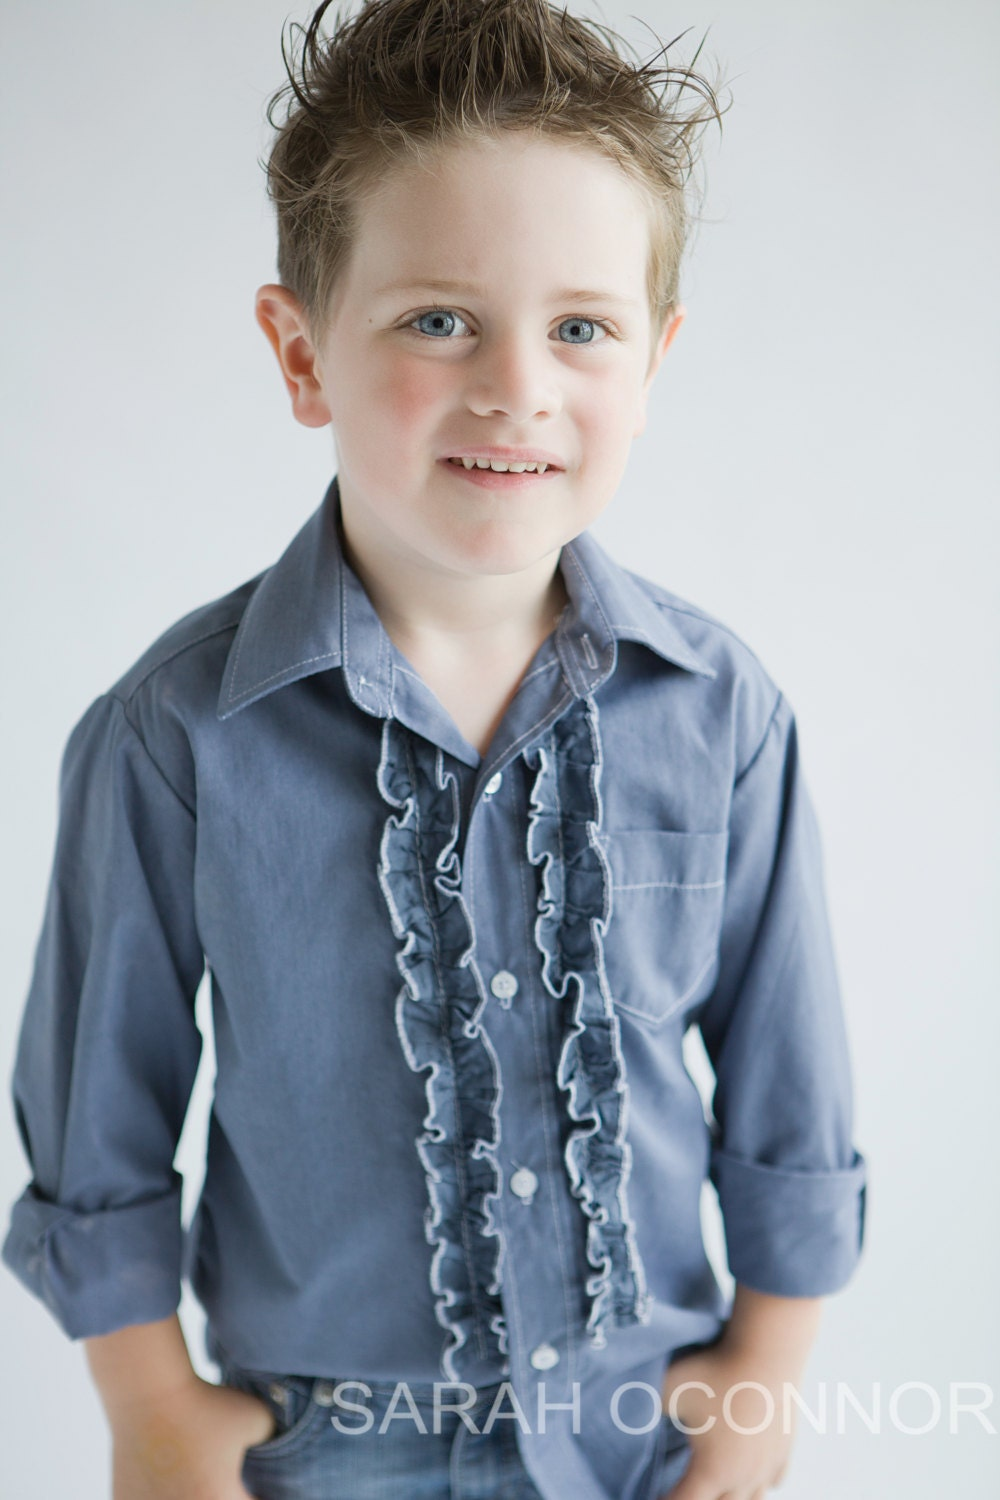 You searched for: boys ruffled shirt! Etsy is the home to thousands of handmade, vintage, and one-of-a-kind products and gifts related to your search. No matter what you're looking for or where you are in the world, our global marketplace of sellers can help you find unique and affordable options. Let's get started!